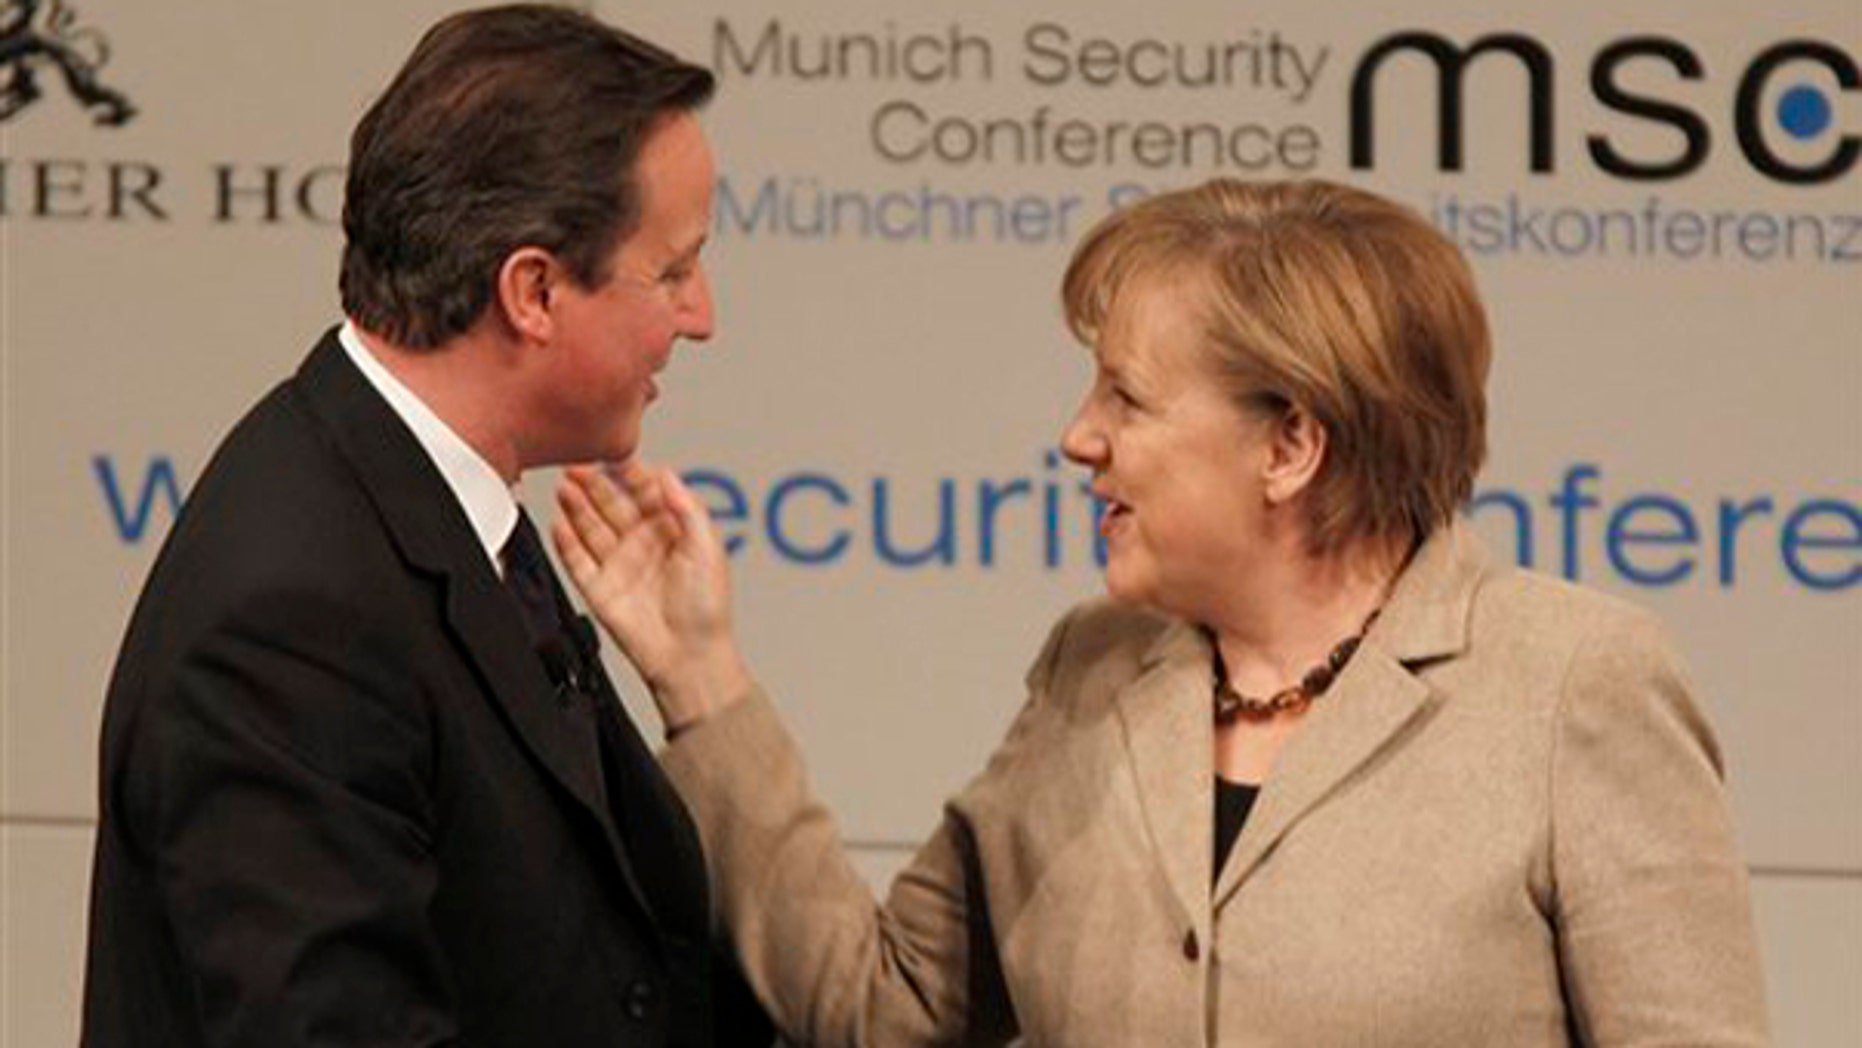 Saturday: British Prime Minister David Cameron chats with German Chancellor Angela Merkel after attending a panel discussion during the Conference on Security Policy in Munich, Germany.